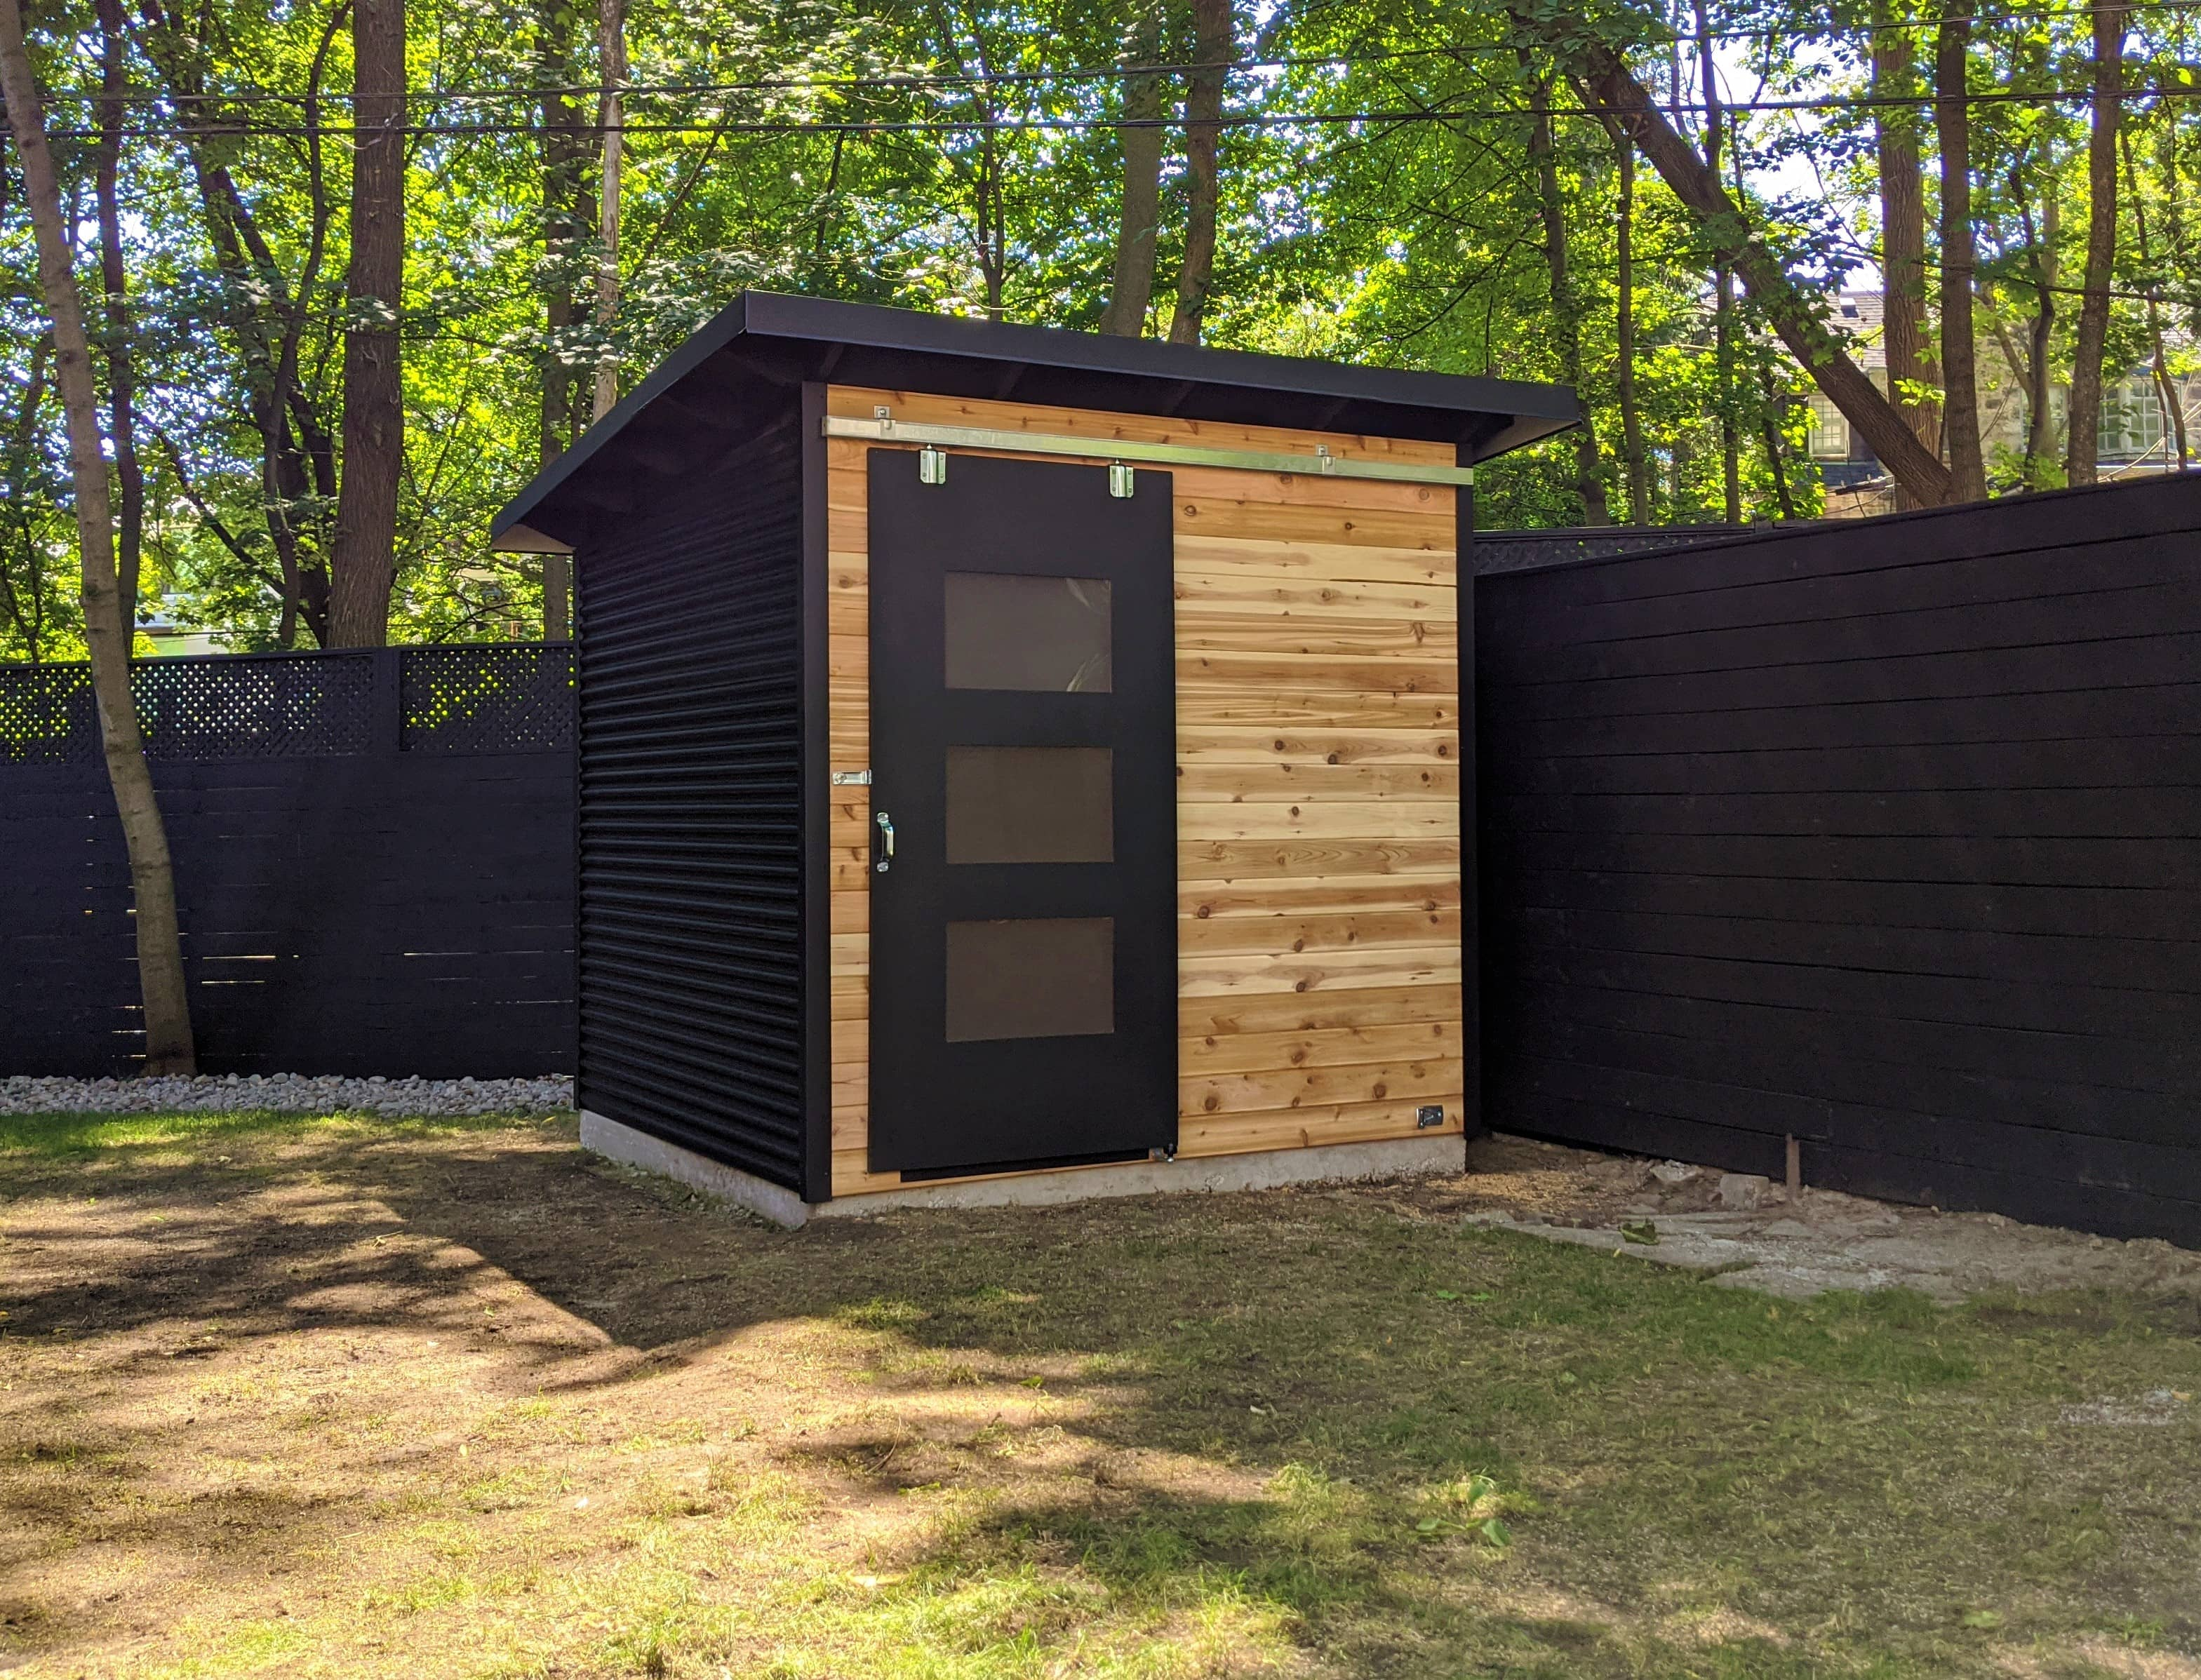 8' x 8' Essential Garden Shed with Natural Cedar Siding and Jet Black Steel